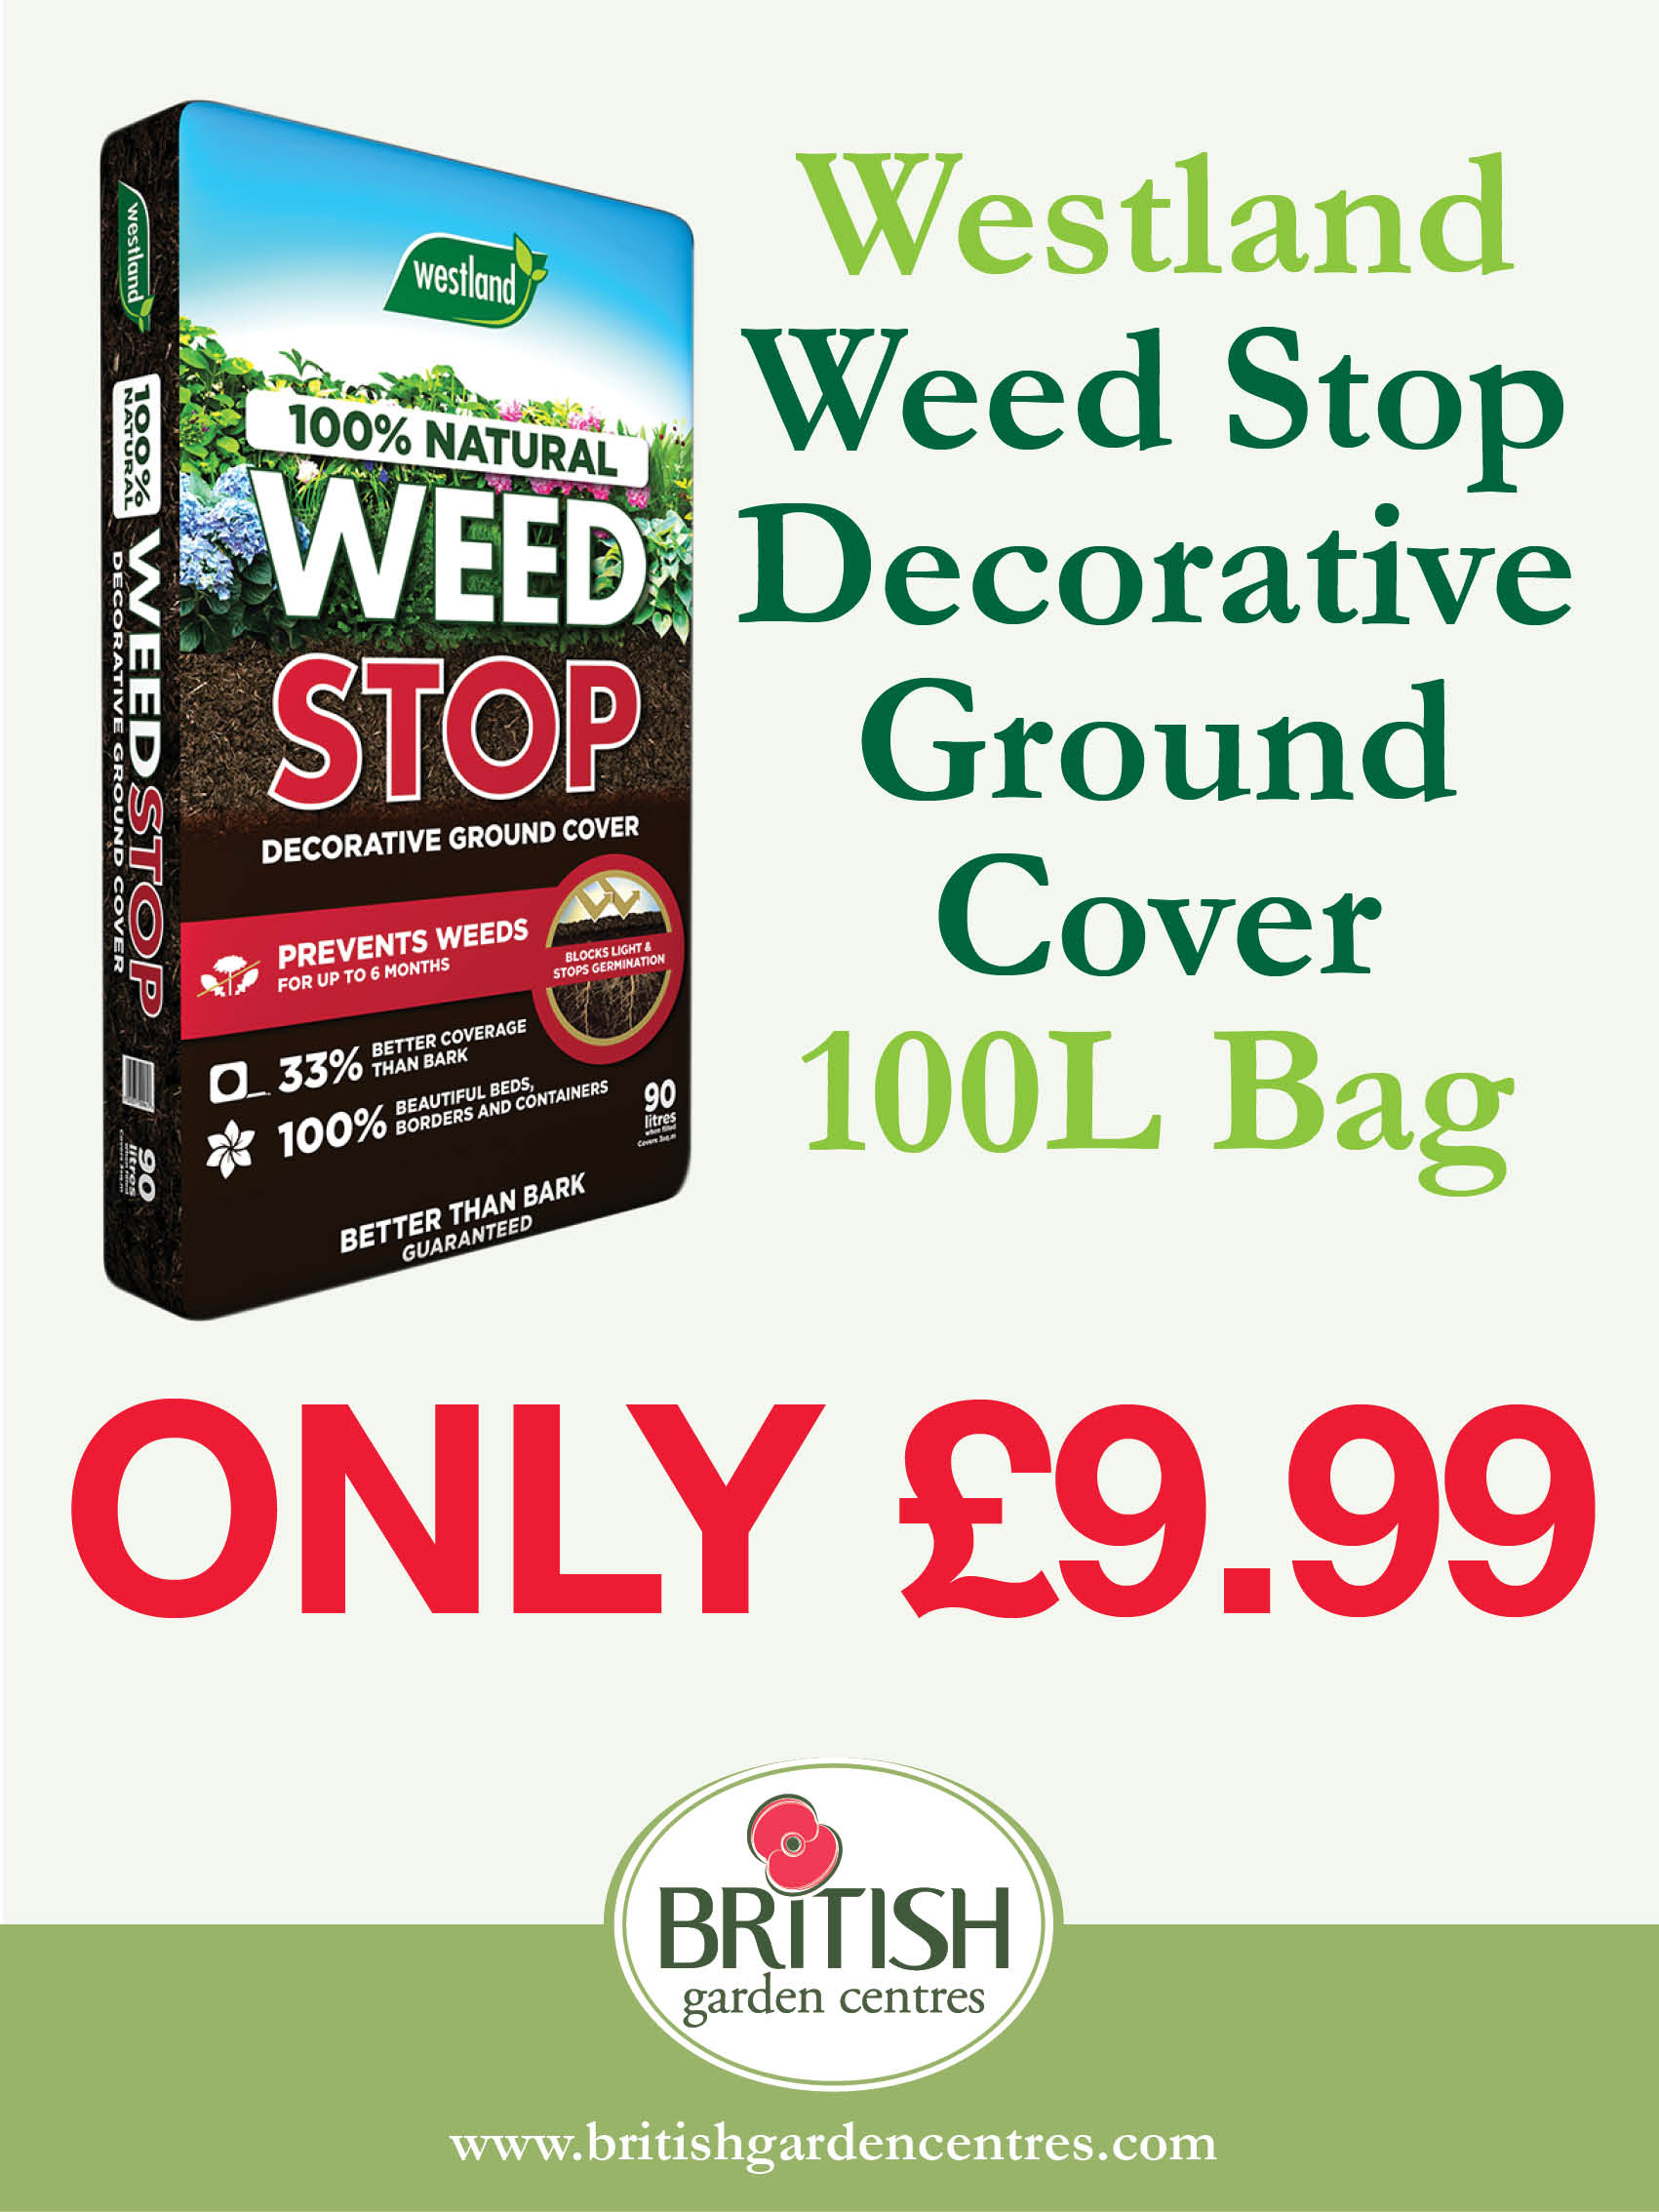 Weed Stop Decoartive Ground Cover 100L